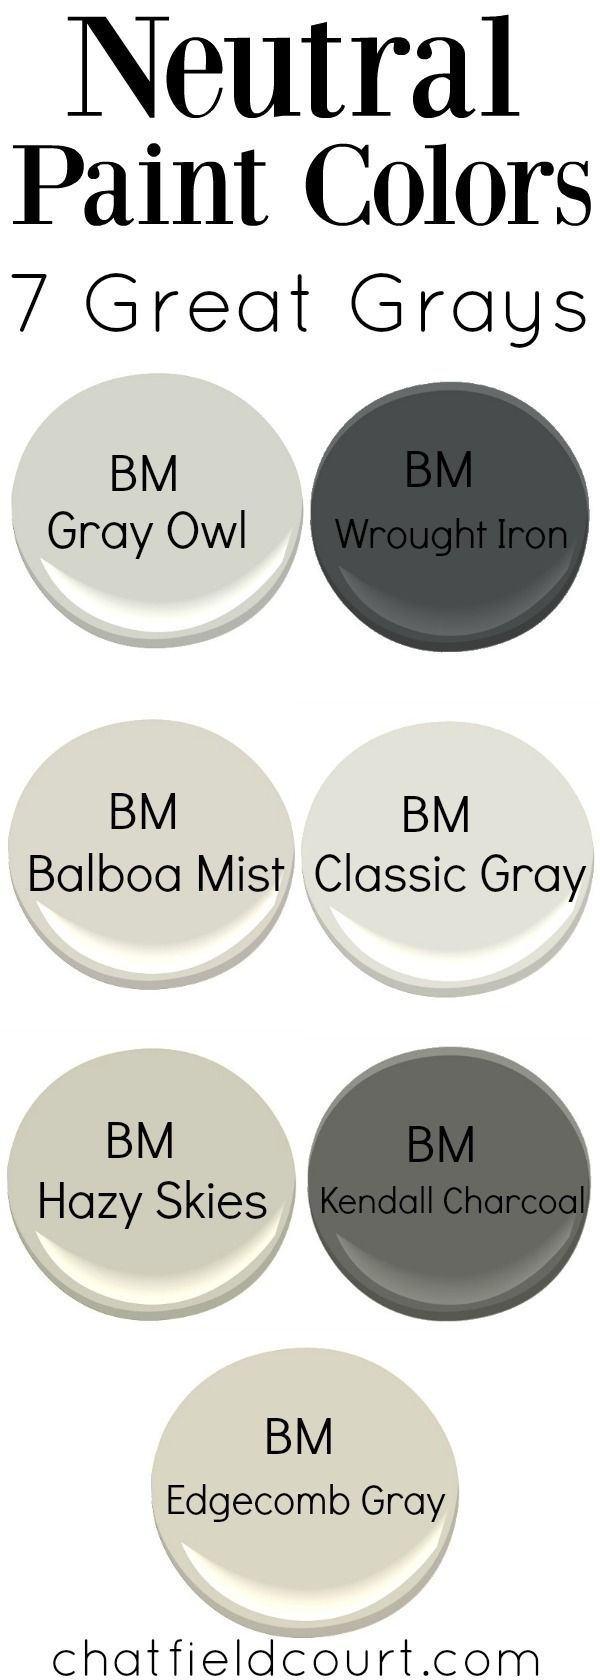 Benjamin moore lenox tan hc 44 - 17 Best Images About The Perfect Tan On Pinterest Paint Colors Favorite Paint Colors And Neutral Paint Colors